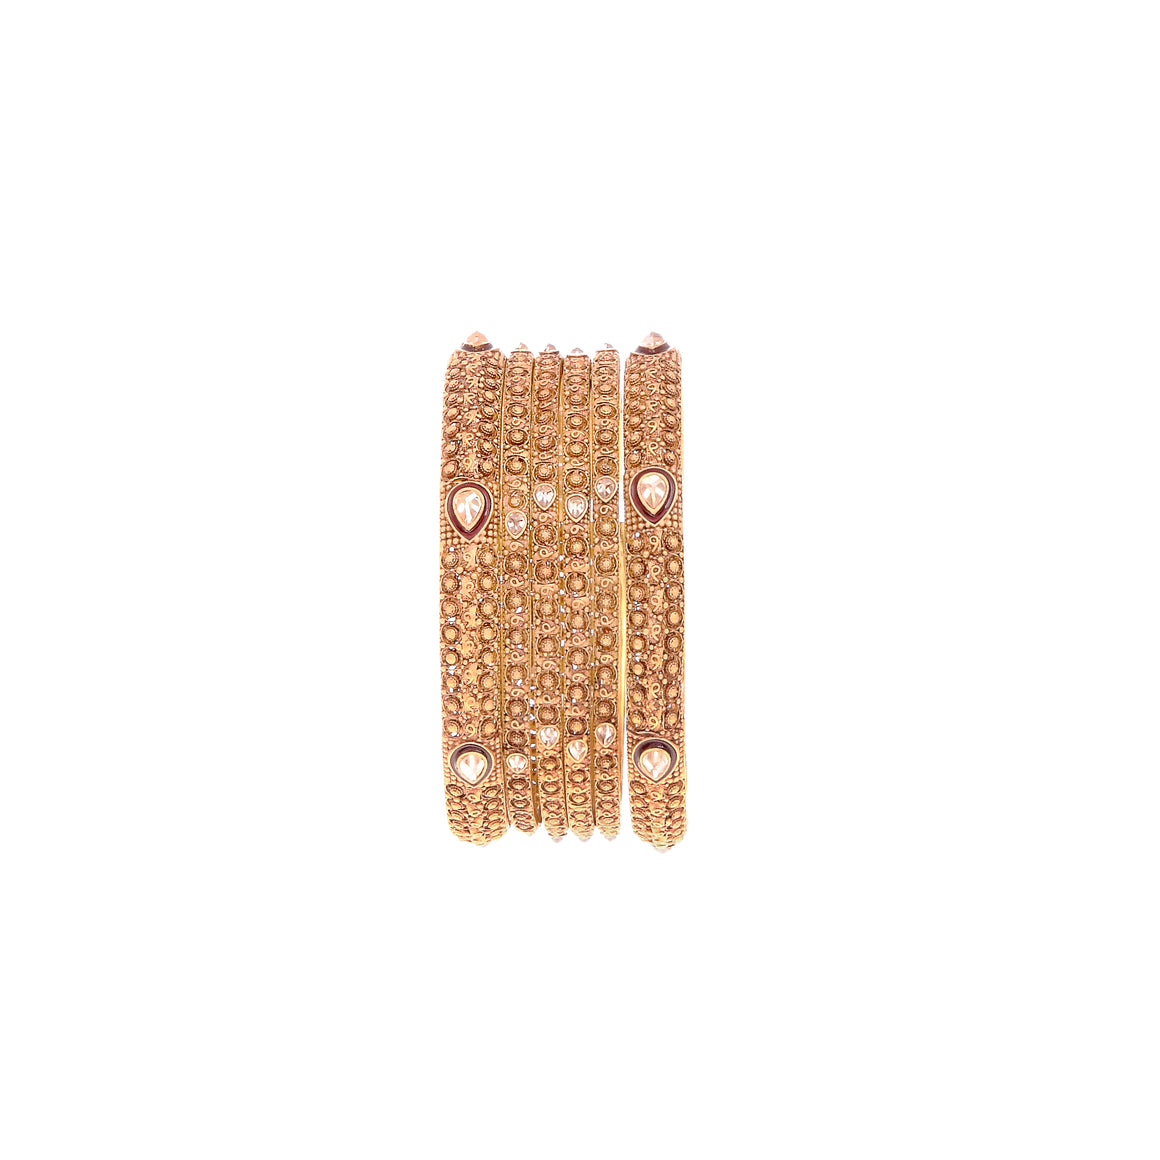 6-Piece Bangles Set with Cubic Zirconia in 22k gold